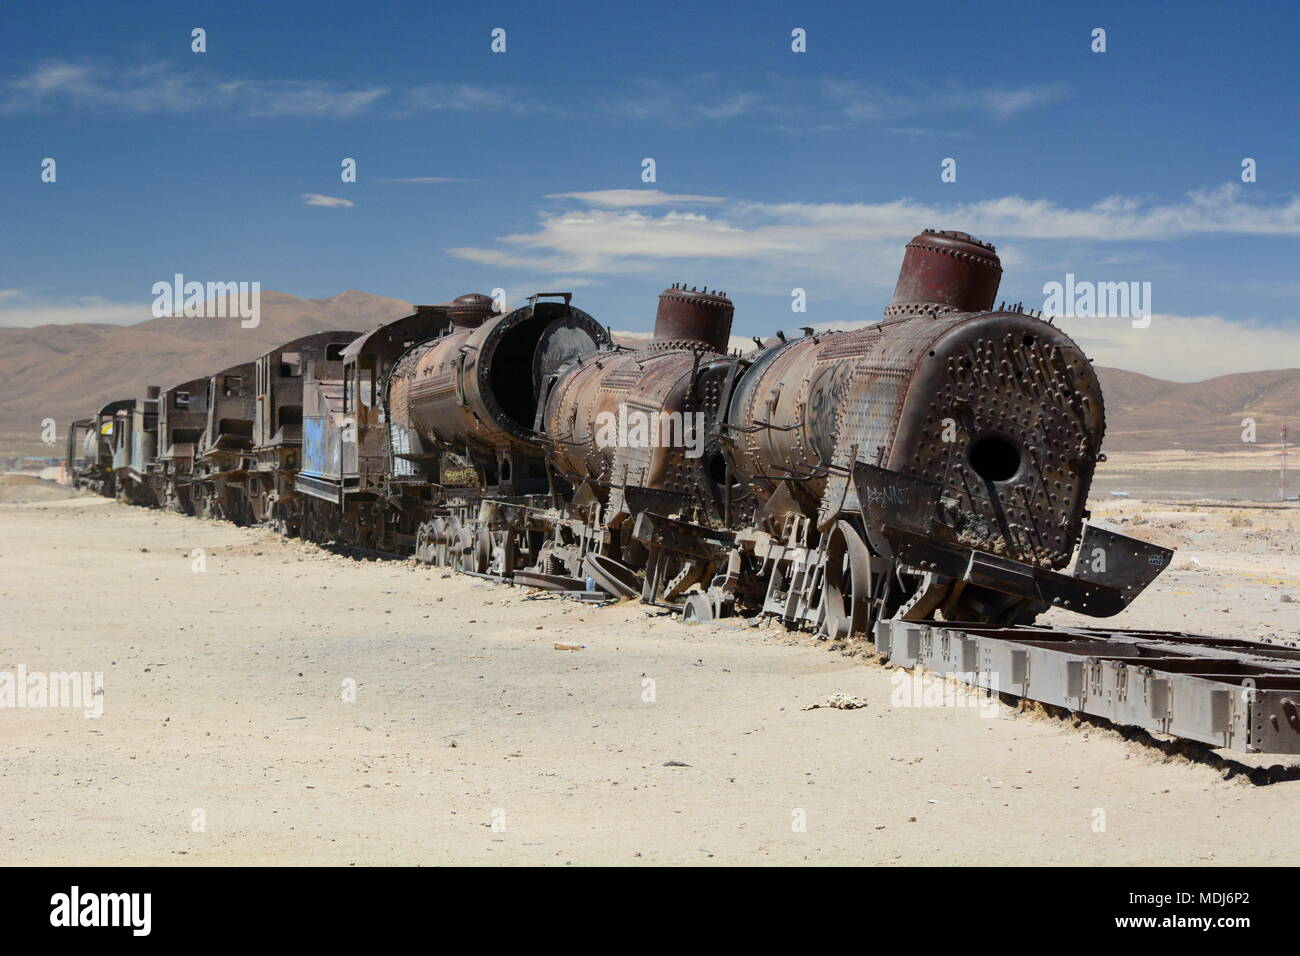 Abandoned train at Train cemetery. Uyuni. Bolivia - Stock Image